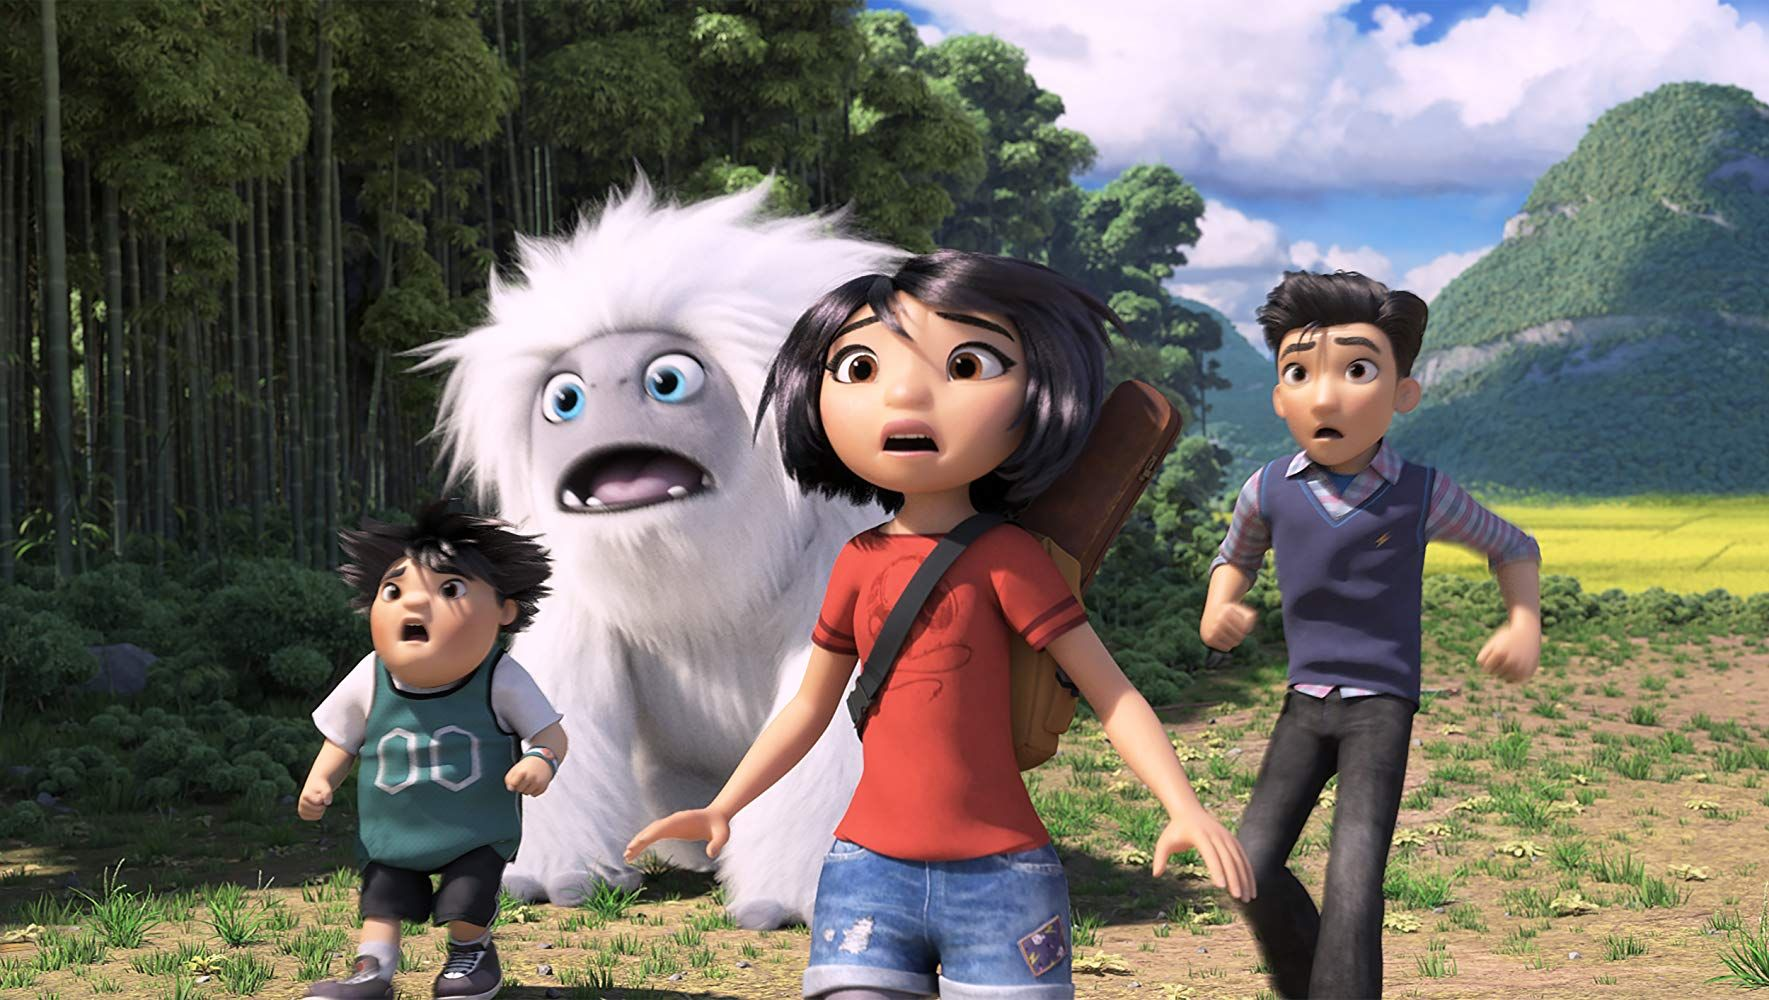 Abominable 2019 Animation Movie Animated Movies Movie Collection